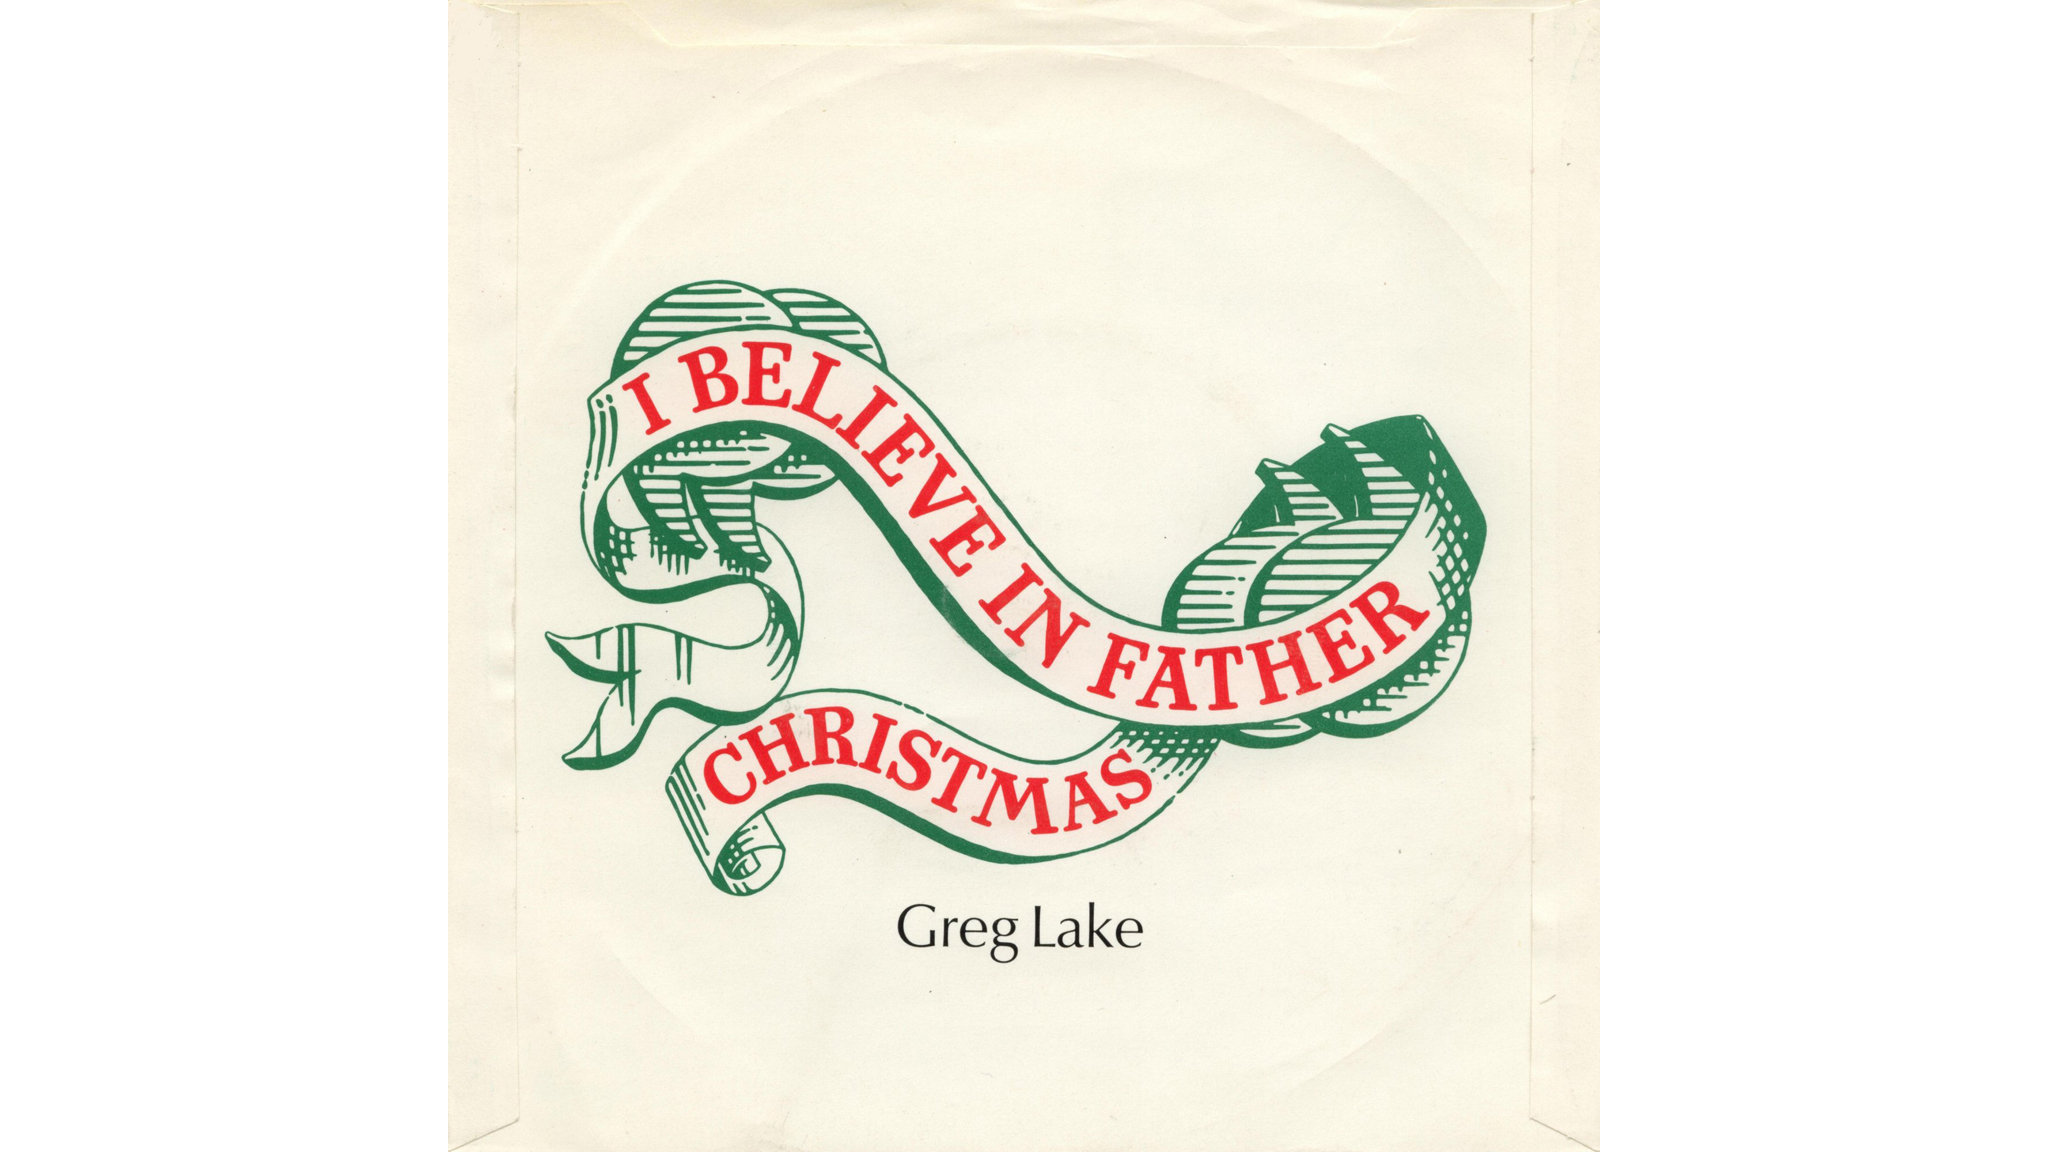 'I Believe in Father Christmas' – Greg Lake